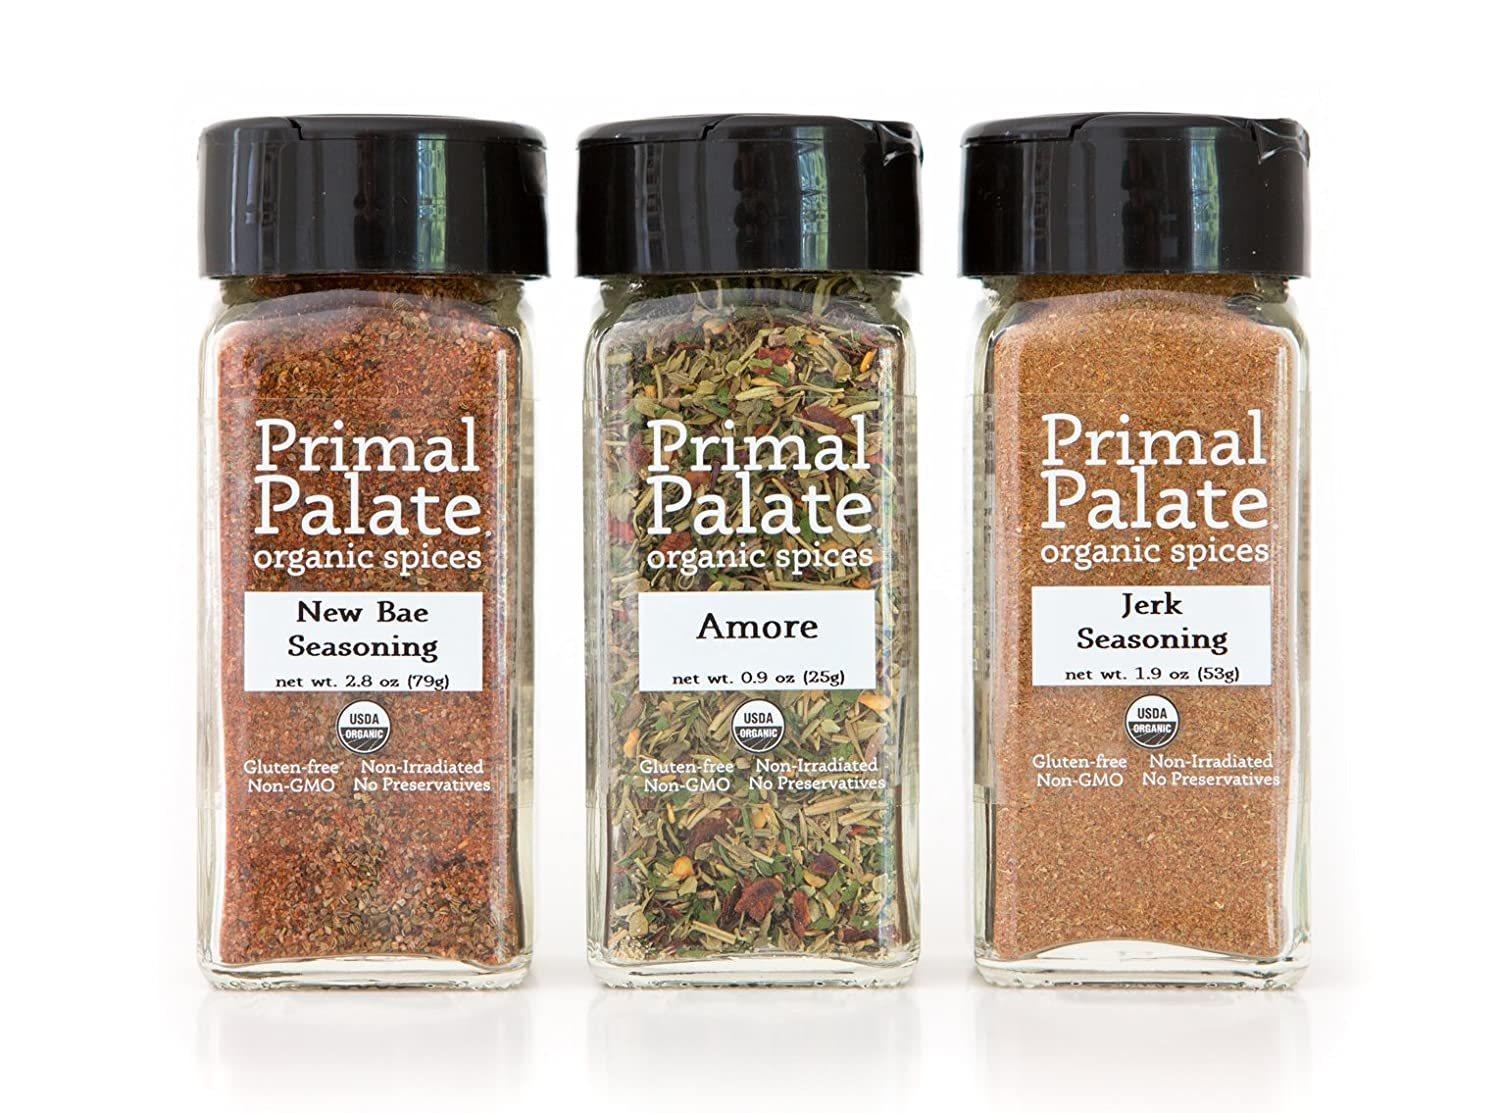 Primal Palate Organic Spices - Food Lovers Pack 3-Bottle Gift Set